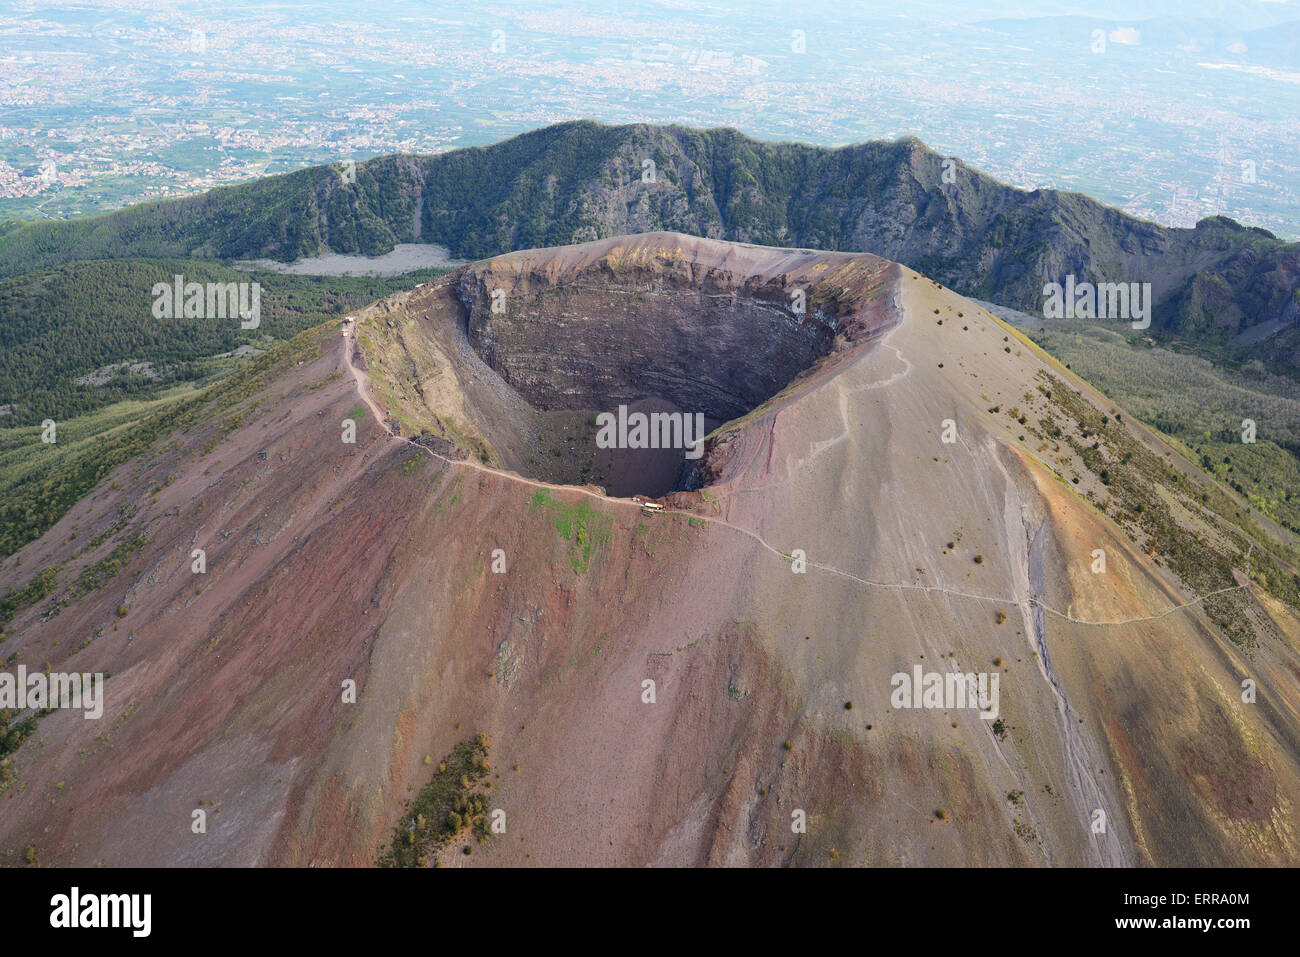 CRATER OF MOUNT VESUVIUS (aerial view). 1281-meter-high volcano between Naples and Pompeii, Campania, Italy. - Stock Image